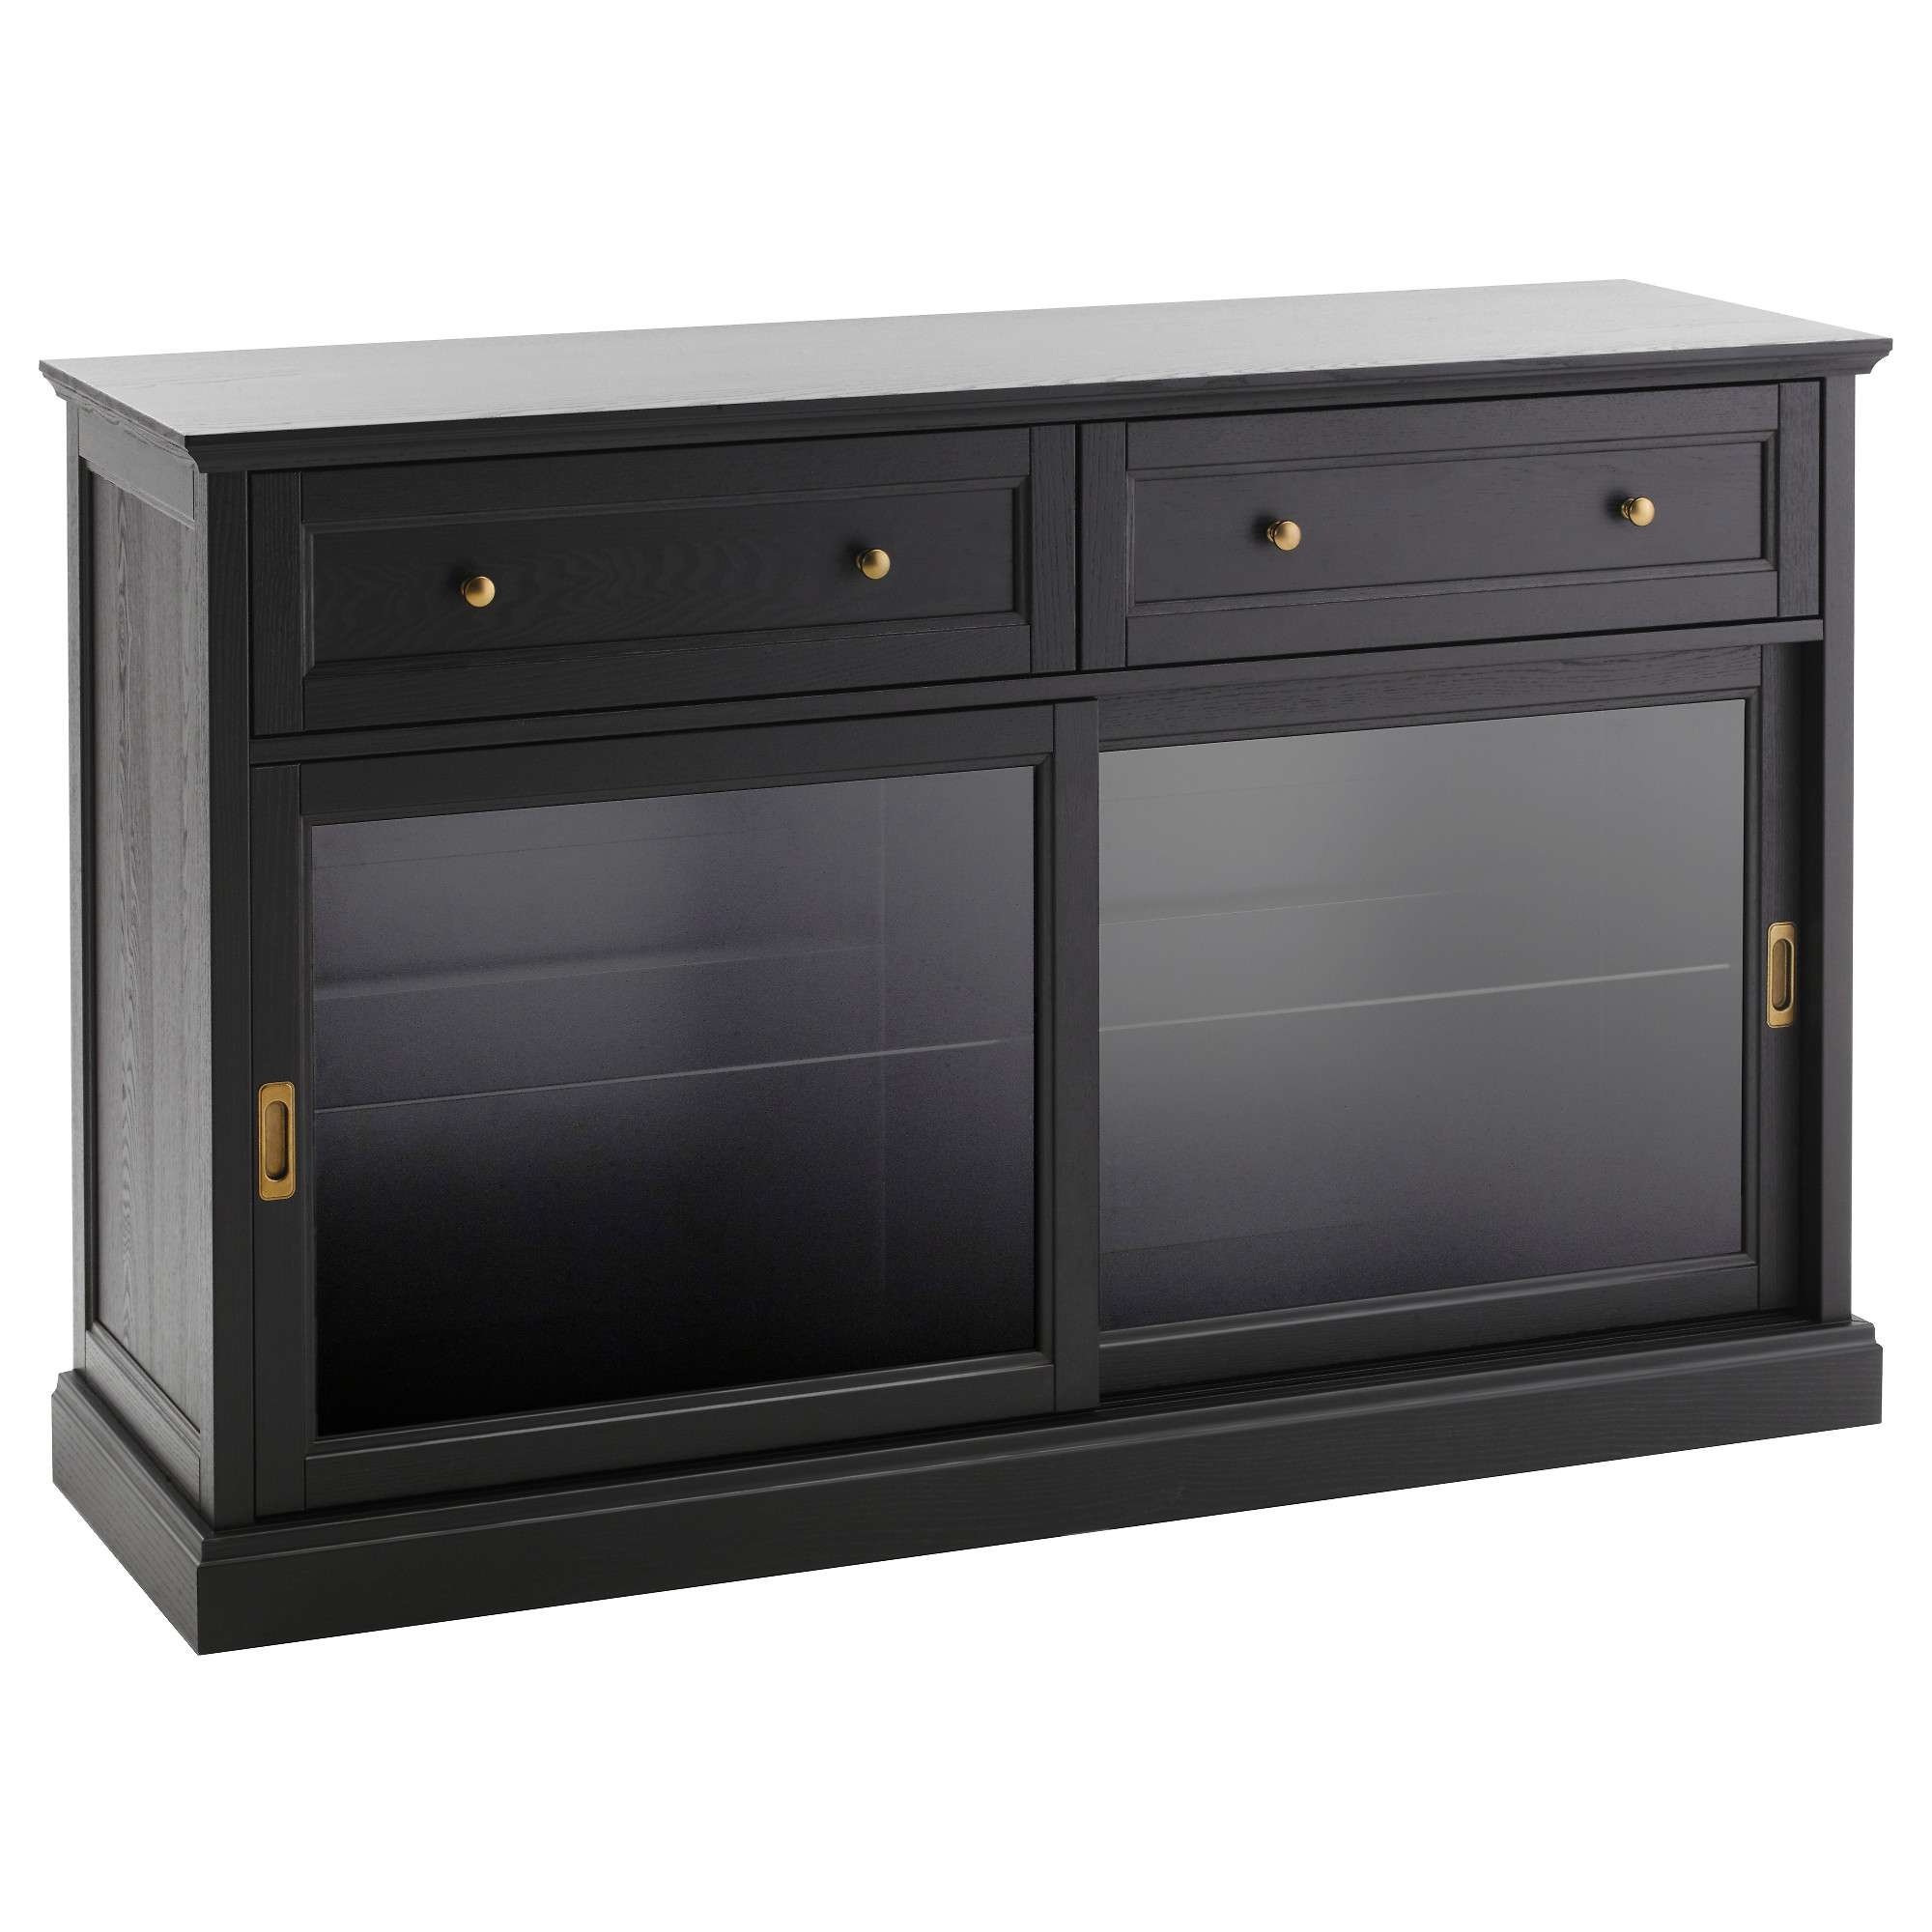 Malsjö Sideboard Basic Unit Black Stained 145X92 Cm – Ikea Intended For White Sideboards (View 9 of 20)